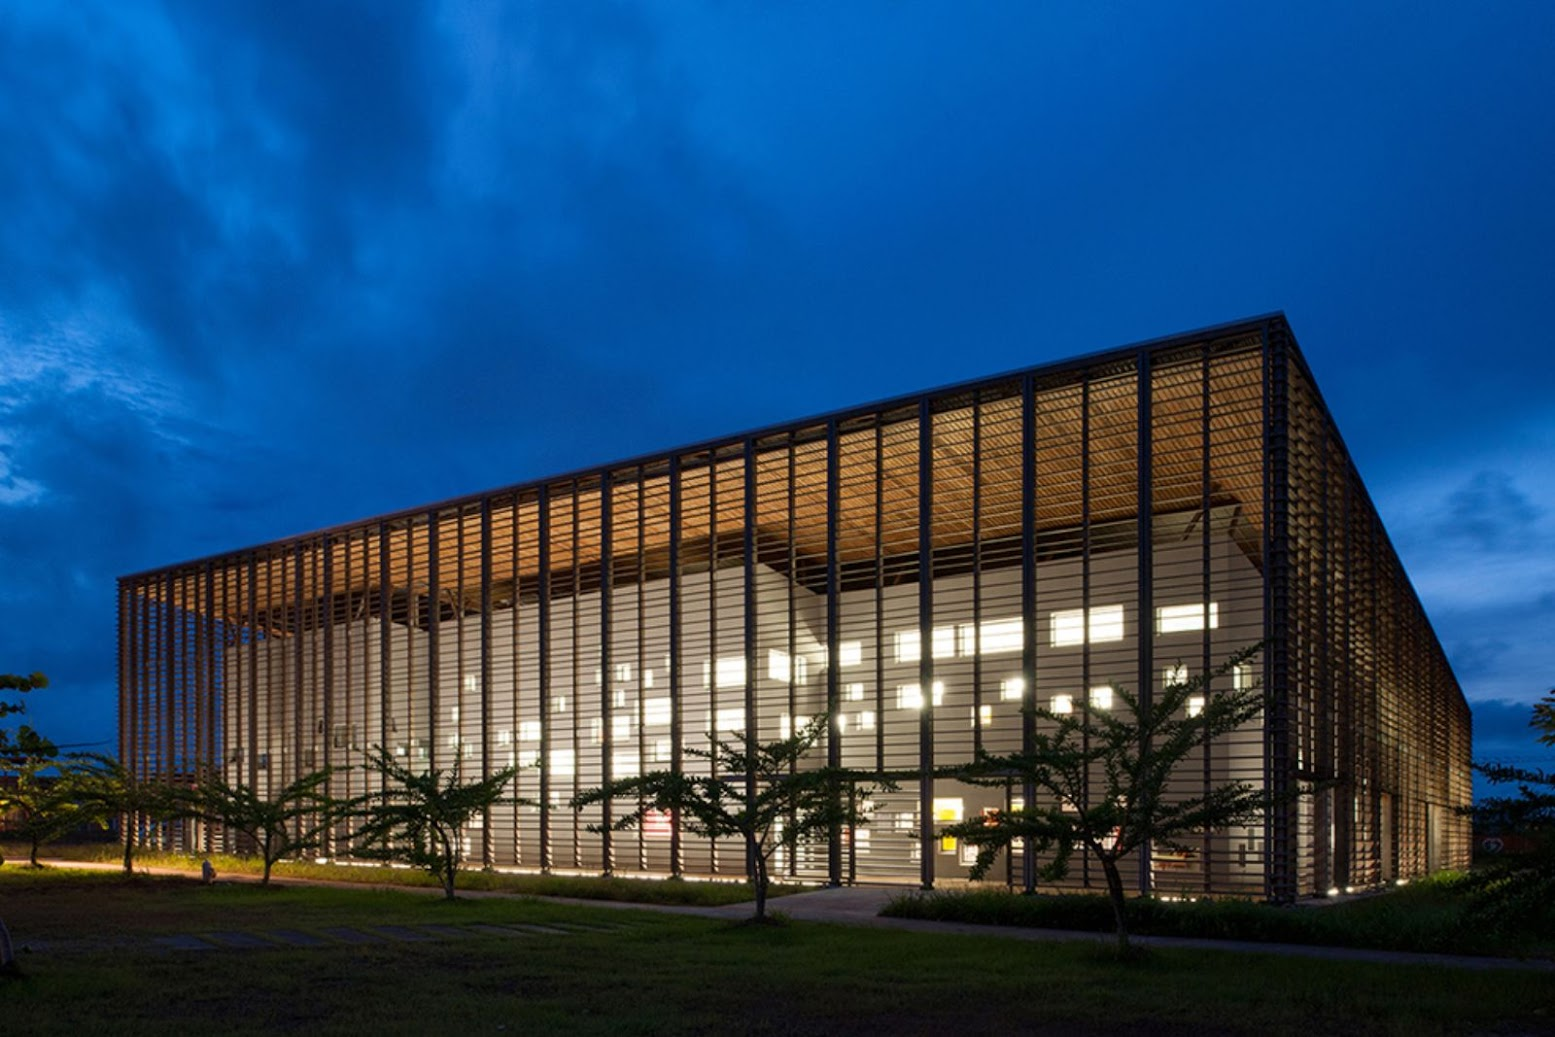 Caienna, Guiana Francese: [UNIVERSITY LIBRARY BY RH+ ARCHITECTURE]